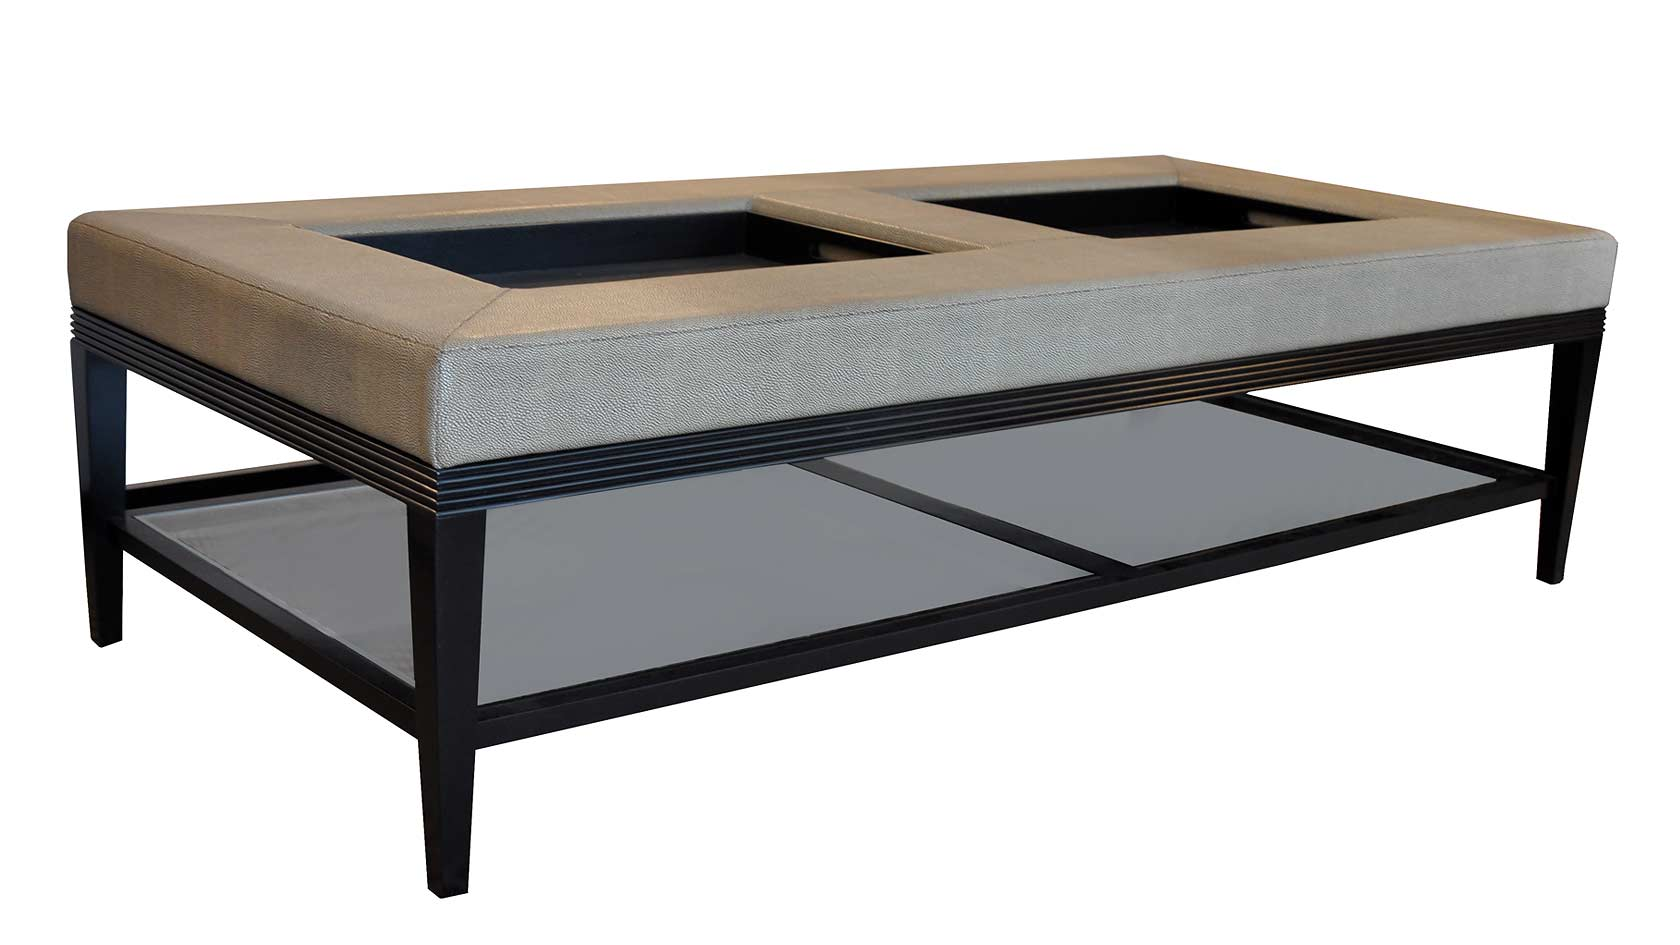 Plush home carlisle double coffee table ottoman Ottoman coffee table trays